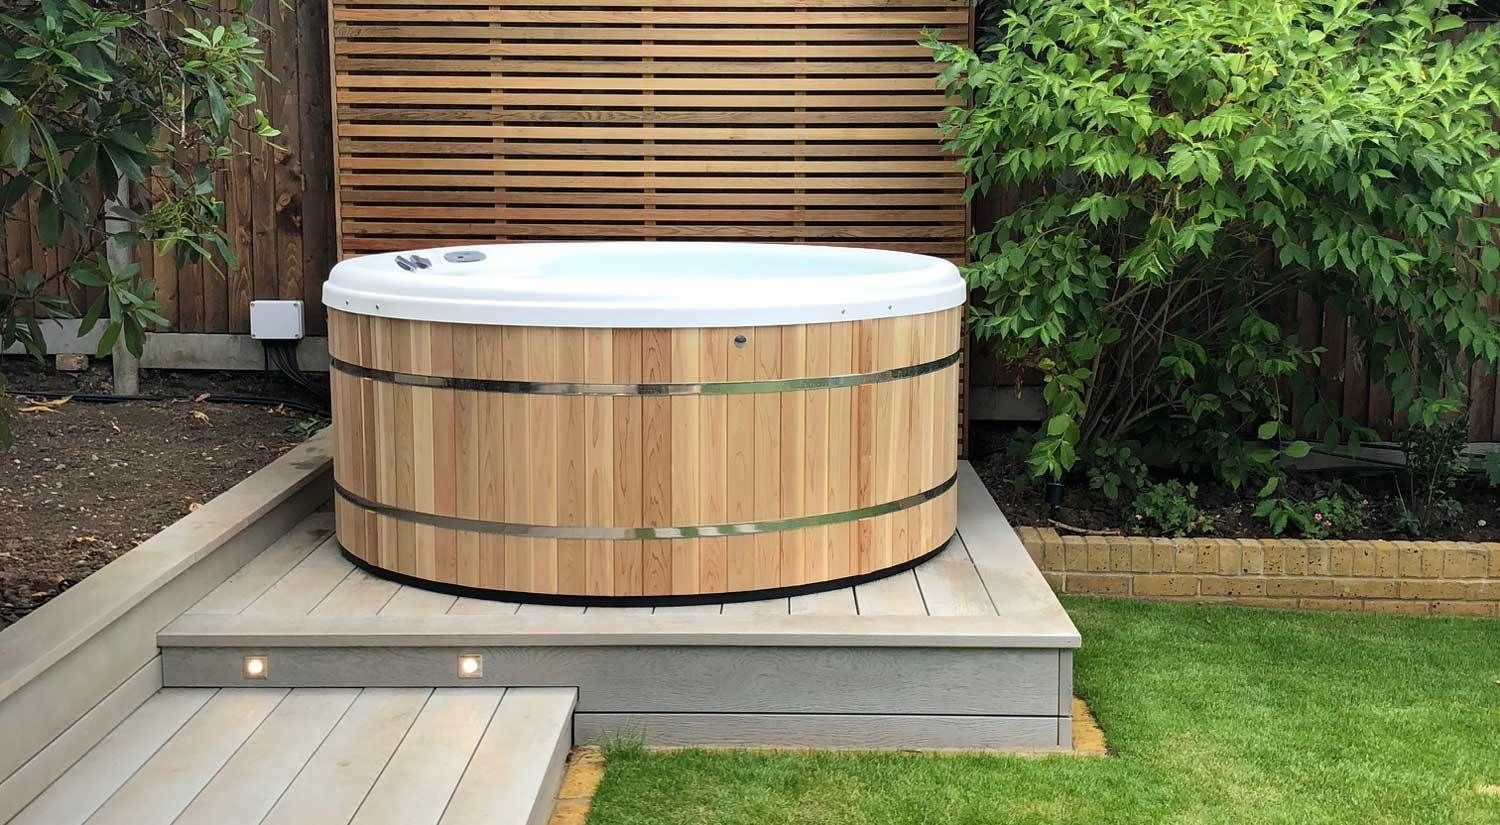 Wooden Hot Tubs Designed By Urban Cedar Hot Tubs Based In Bristol We Cover All Of The Uk Including London Hot Tub Backyard Hot Tub Outdoor Hot Tub Landscaping